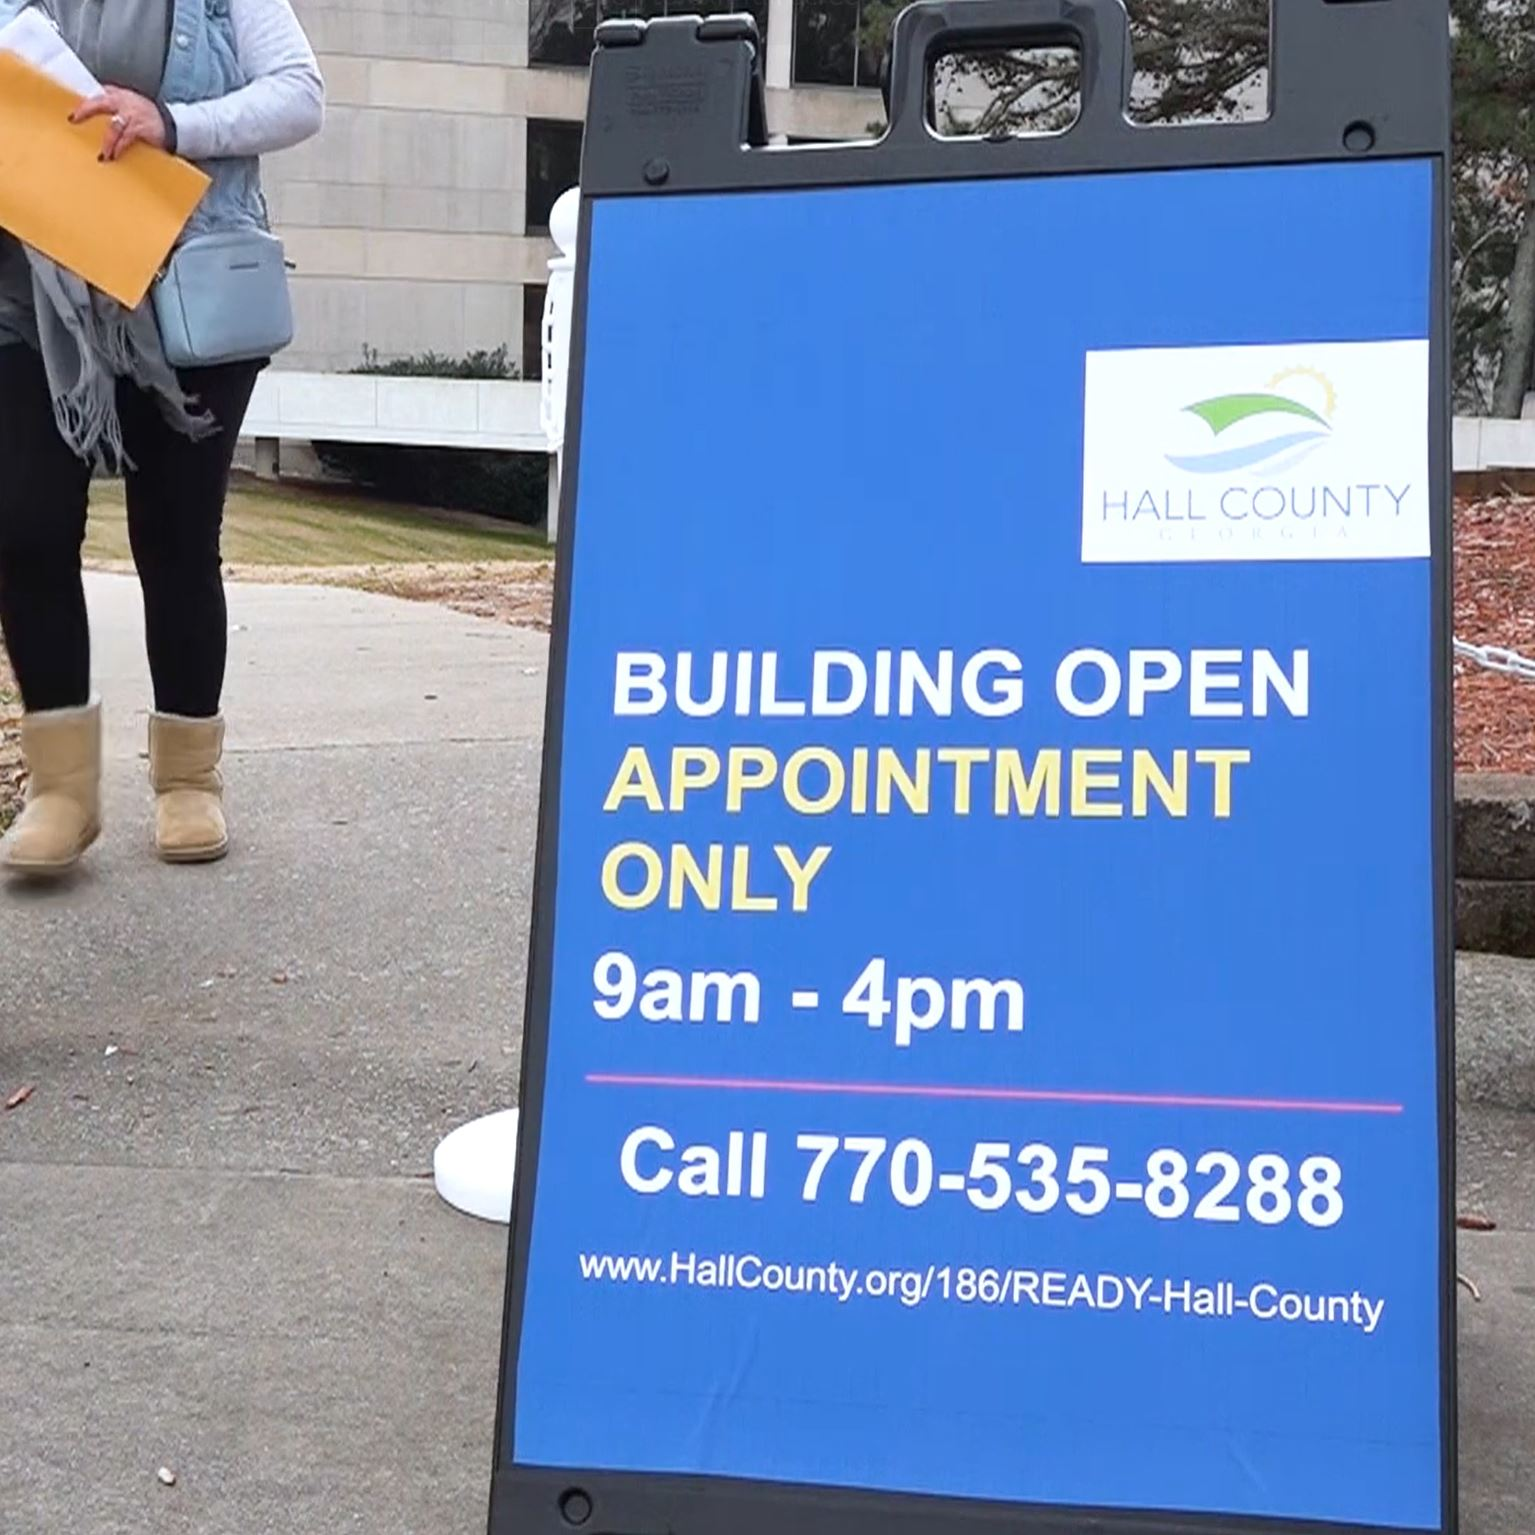 A sign indicating a building is open for appointments only.